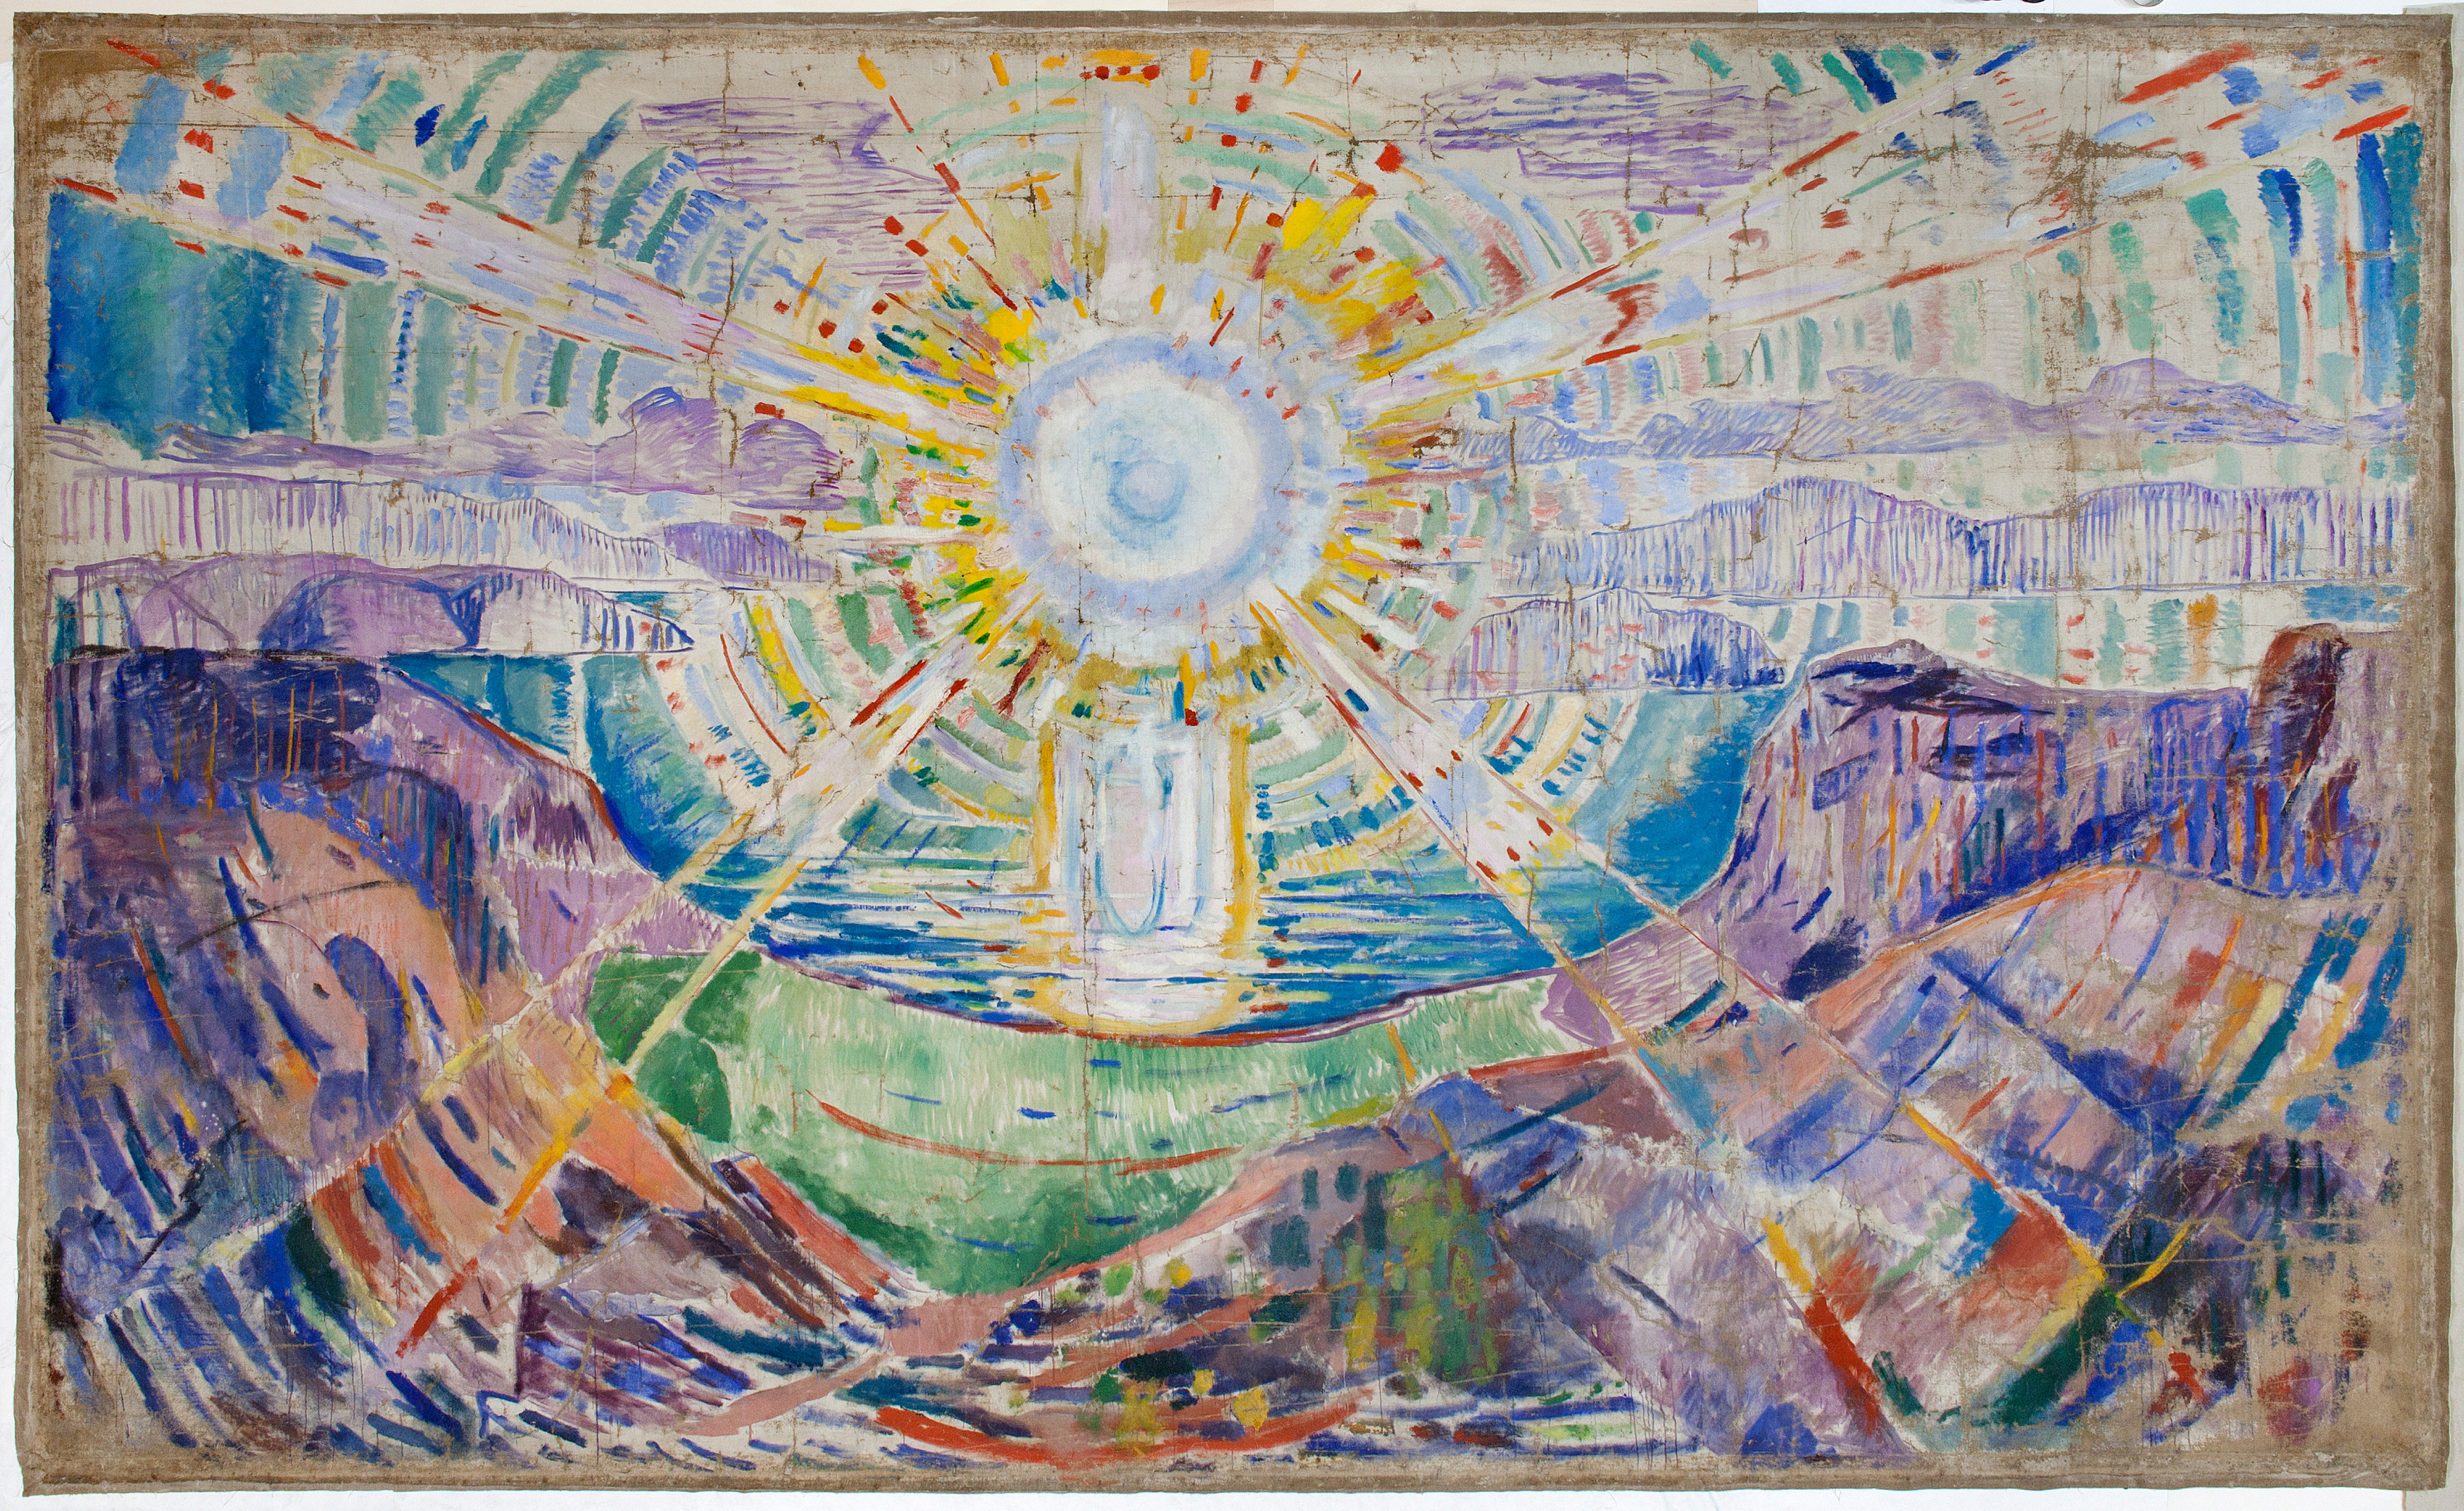 Edvard Munch: The Sun. Oil on unprimed linen canvas, 1912-13. Photo © Munchmuseet